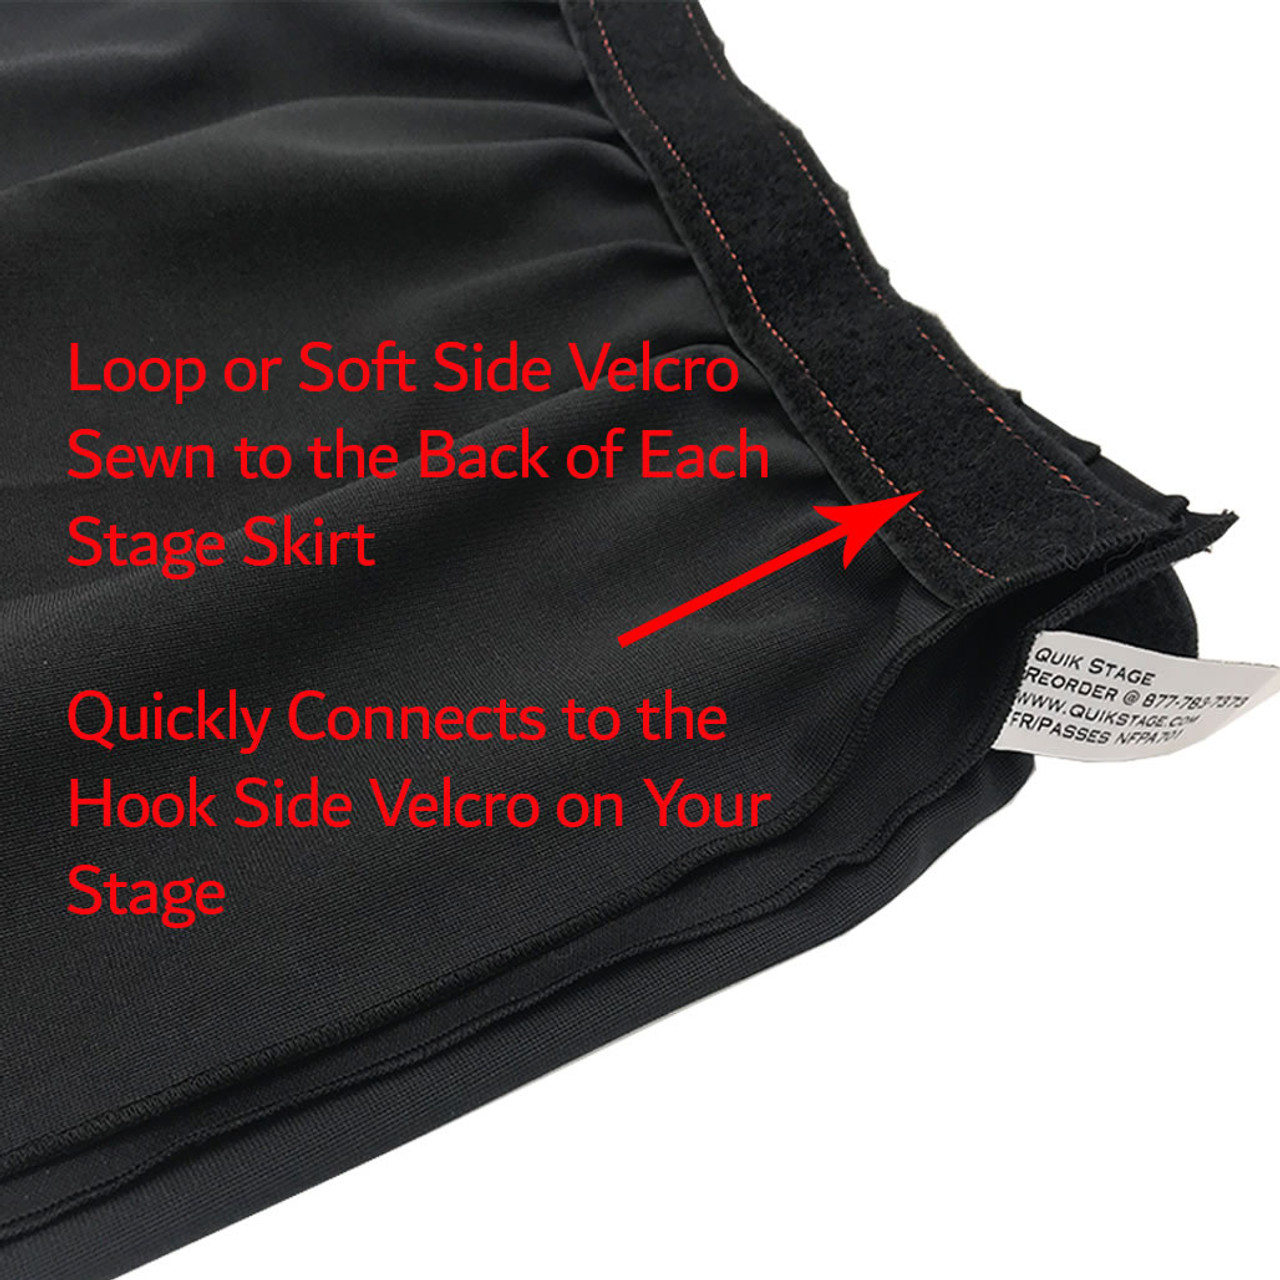 32 Inches High Best Value Black Expo Pleat Polyester Stage Skirting with Velcro. FR Rated. - Loop Velcro sewn on back.